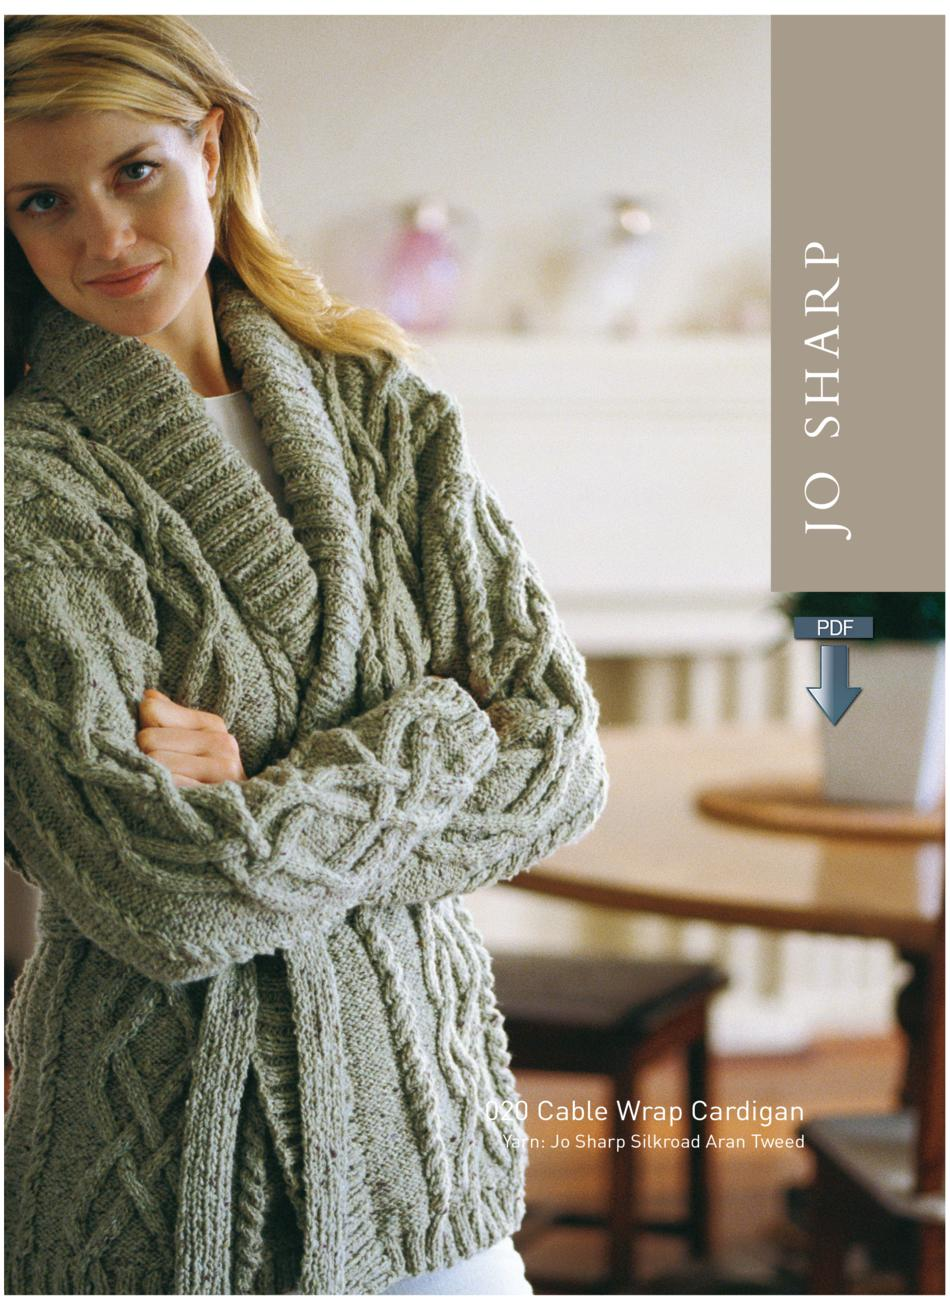 Jo Sharp Cable Wrap Cardigan - Pattern Download, Knitting Pattern ...